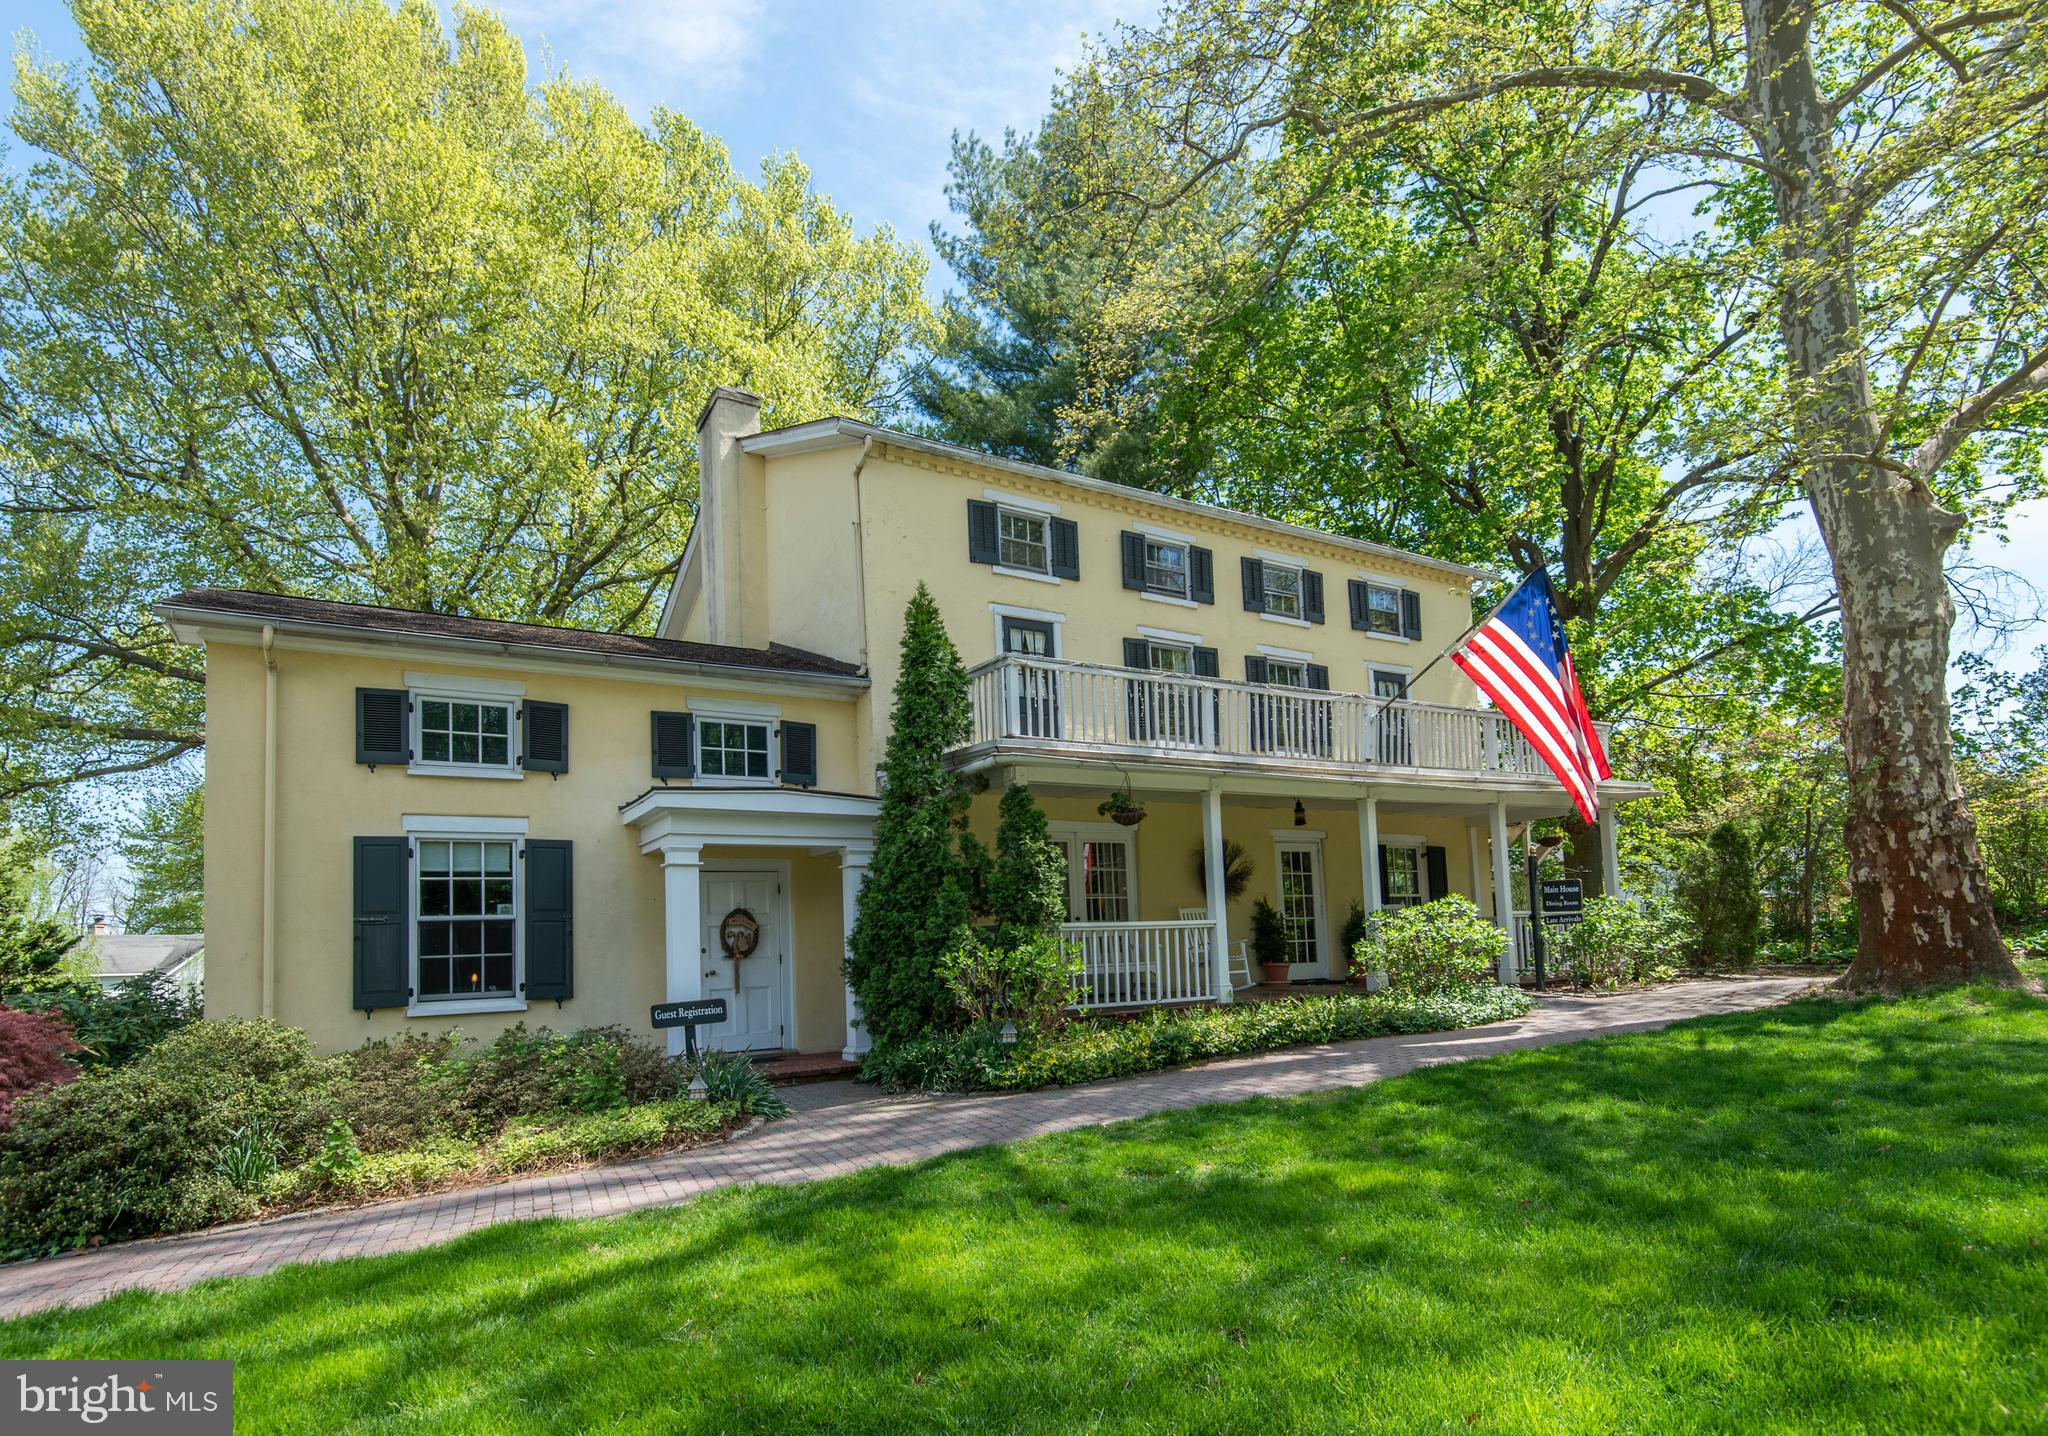 506 KENNETT PIKE, CHADDS FORD, PA 19317